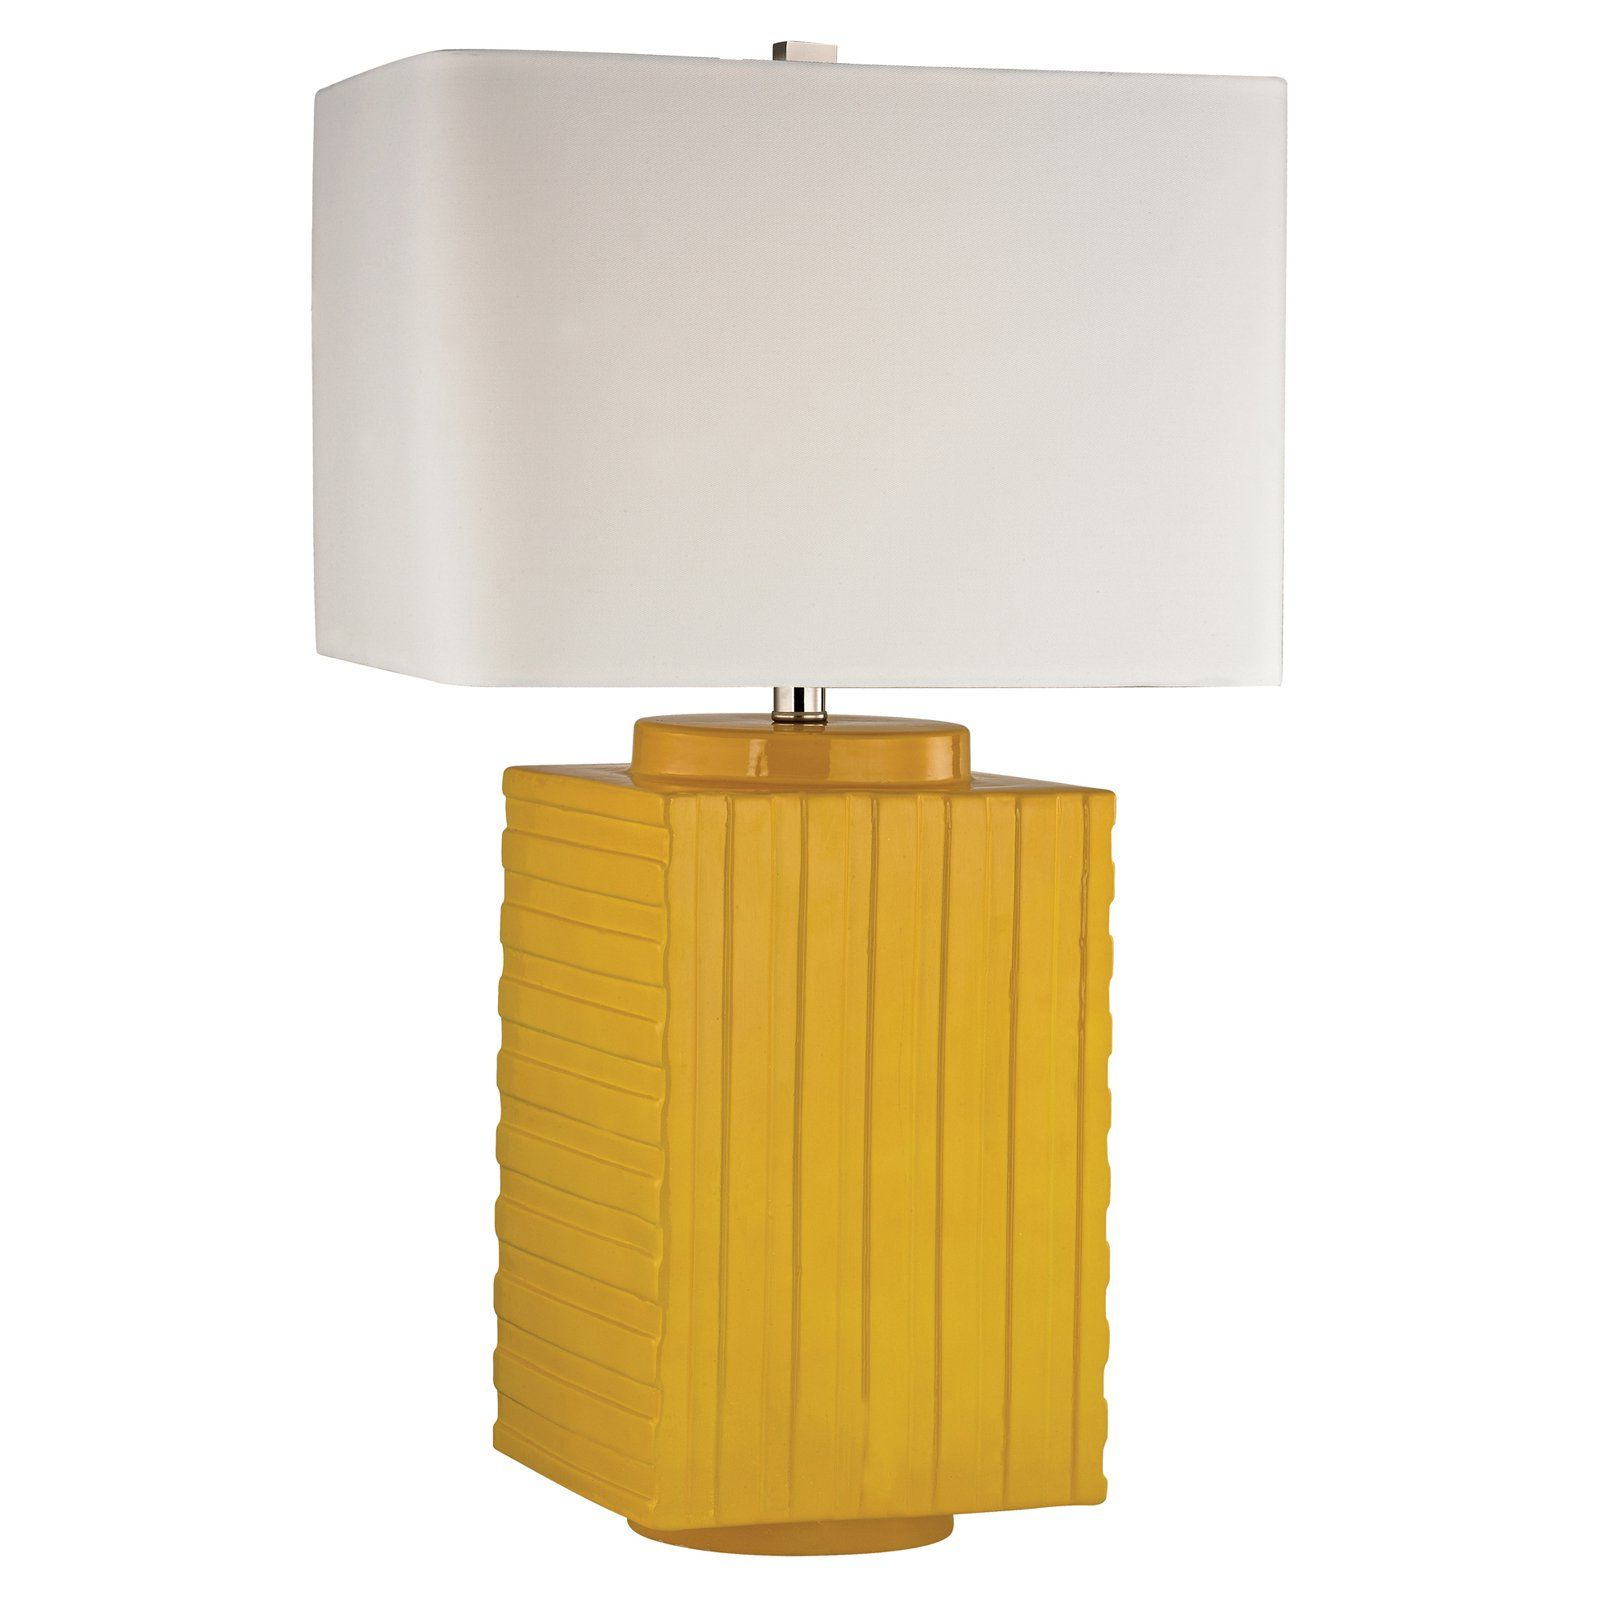 Hgtv Home Energy Yellow Ceramic Table Lamp Www Hayneedle Com Ceramic Table Lamps Lamp Table Lamp